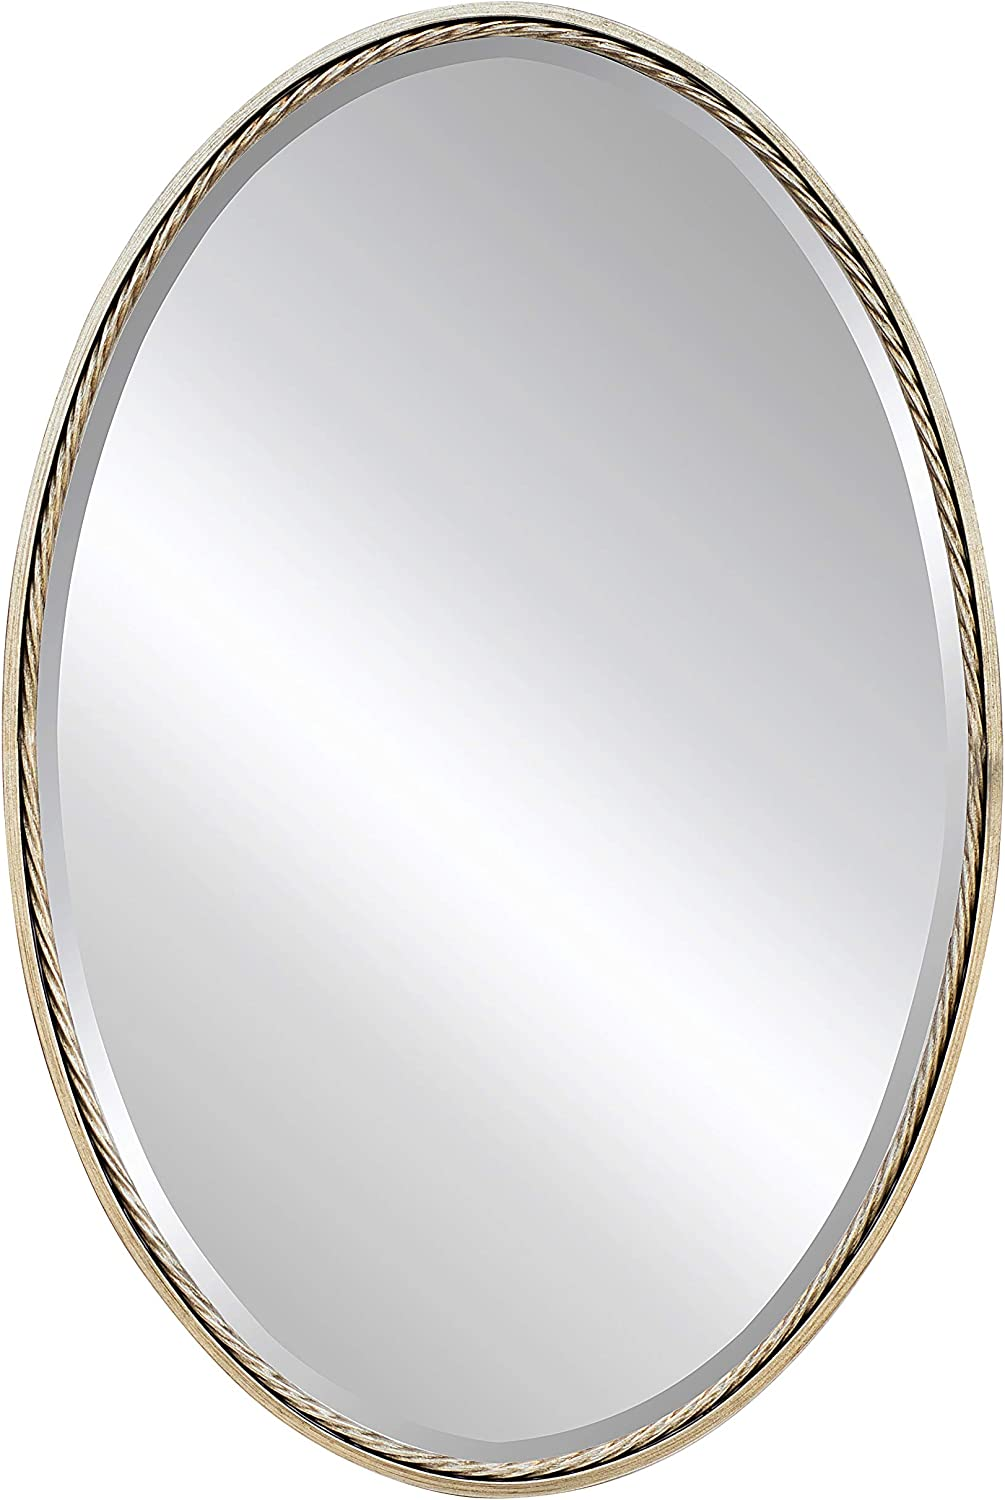 "Large Decorative Mirror for Wall - Oval Metal Framed Mirror with Bevel, Great for Living Room, Bedroom & Bathroom (Antique Silver, 24""x36"")"